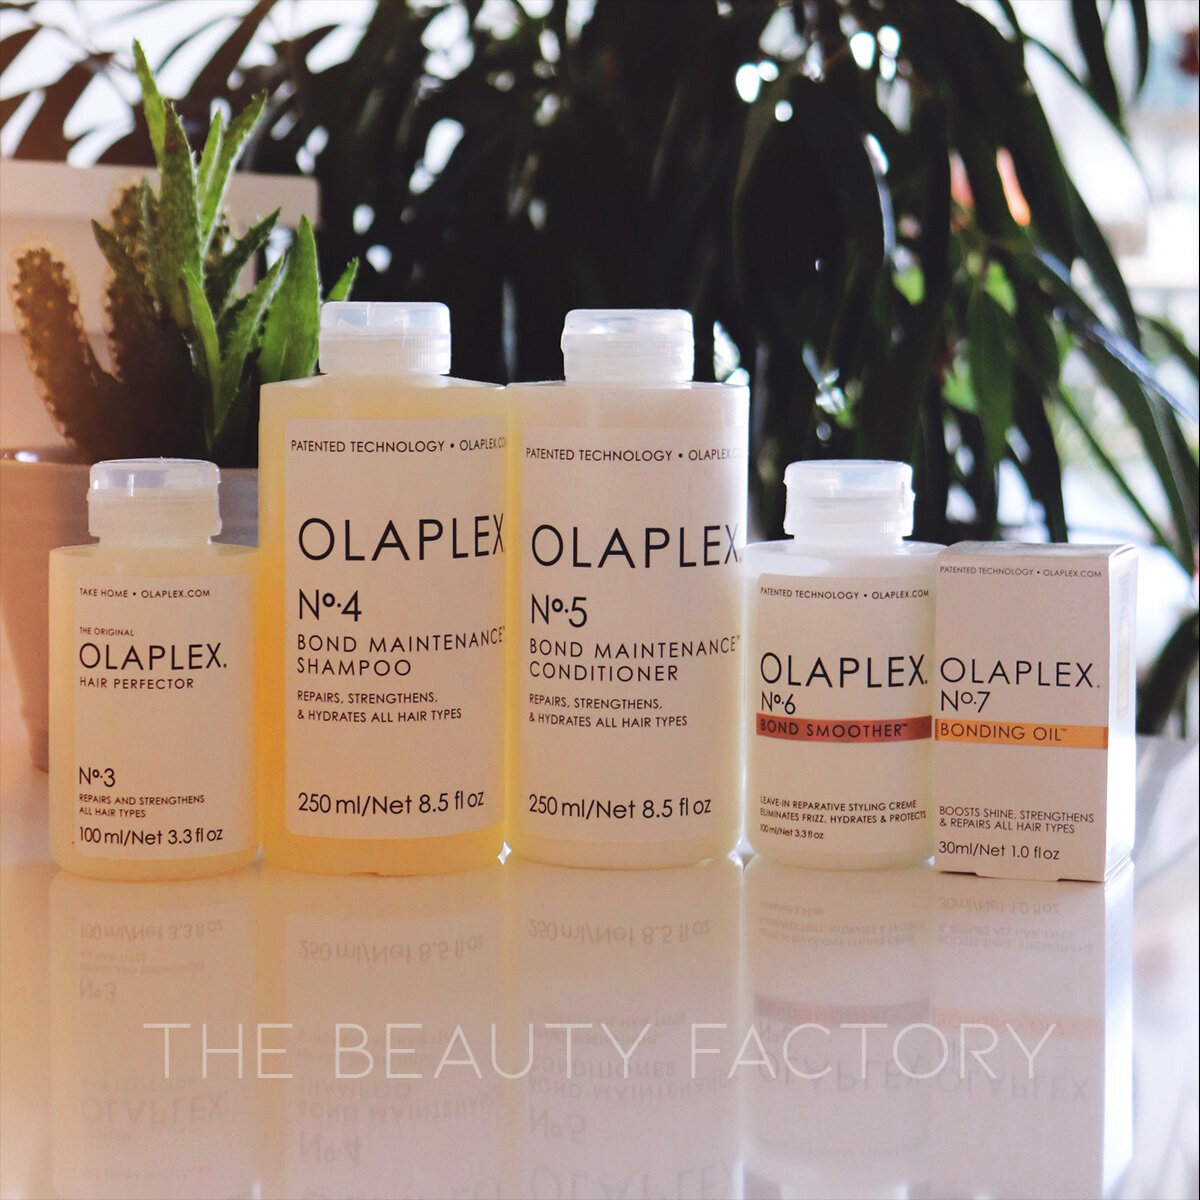 30% Off your take-home Olaplex products - When you come in for a stand-alone Olaplex treatment.